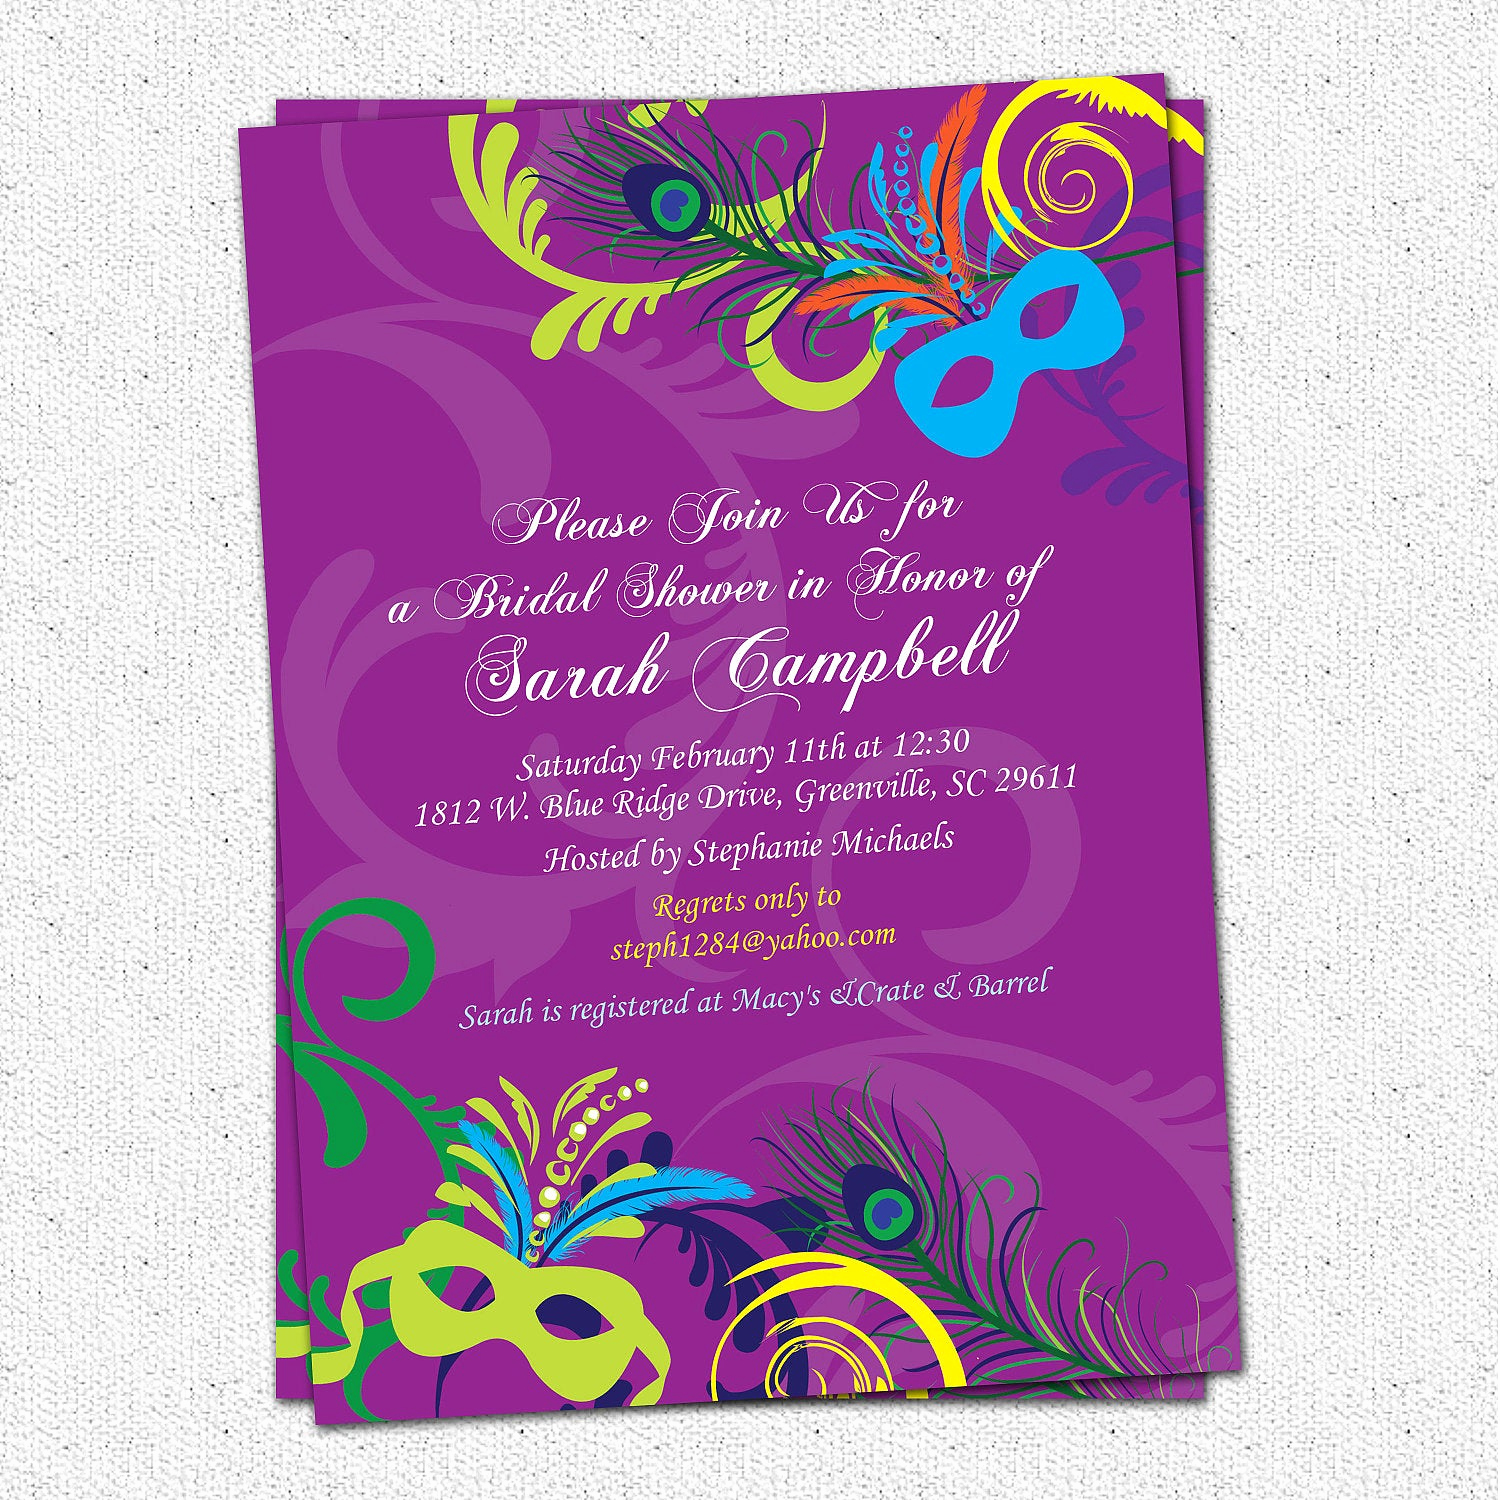 Mardi Gras Invitation Template Beautiful Bridal Shower Invitation Printable Mardigras Mardi Gras